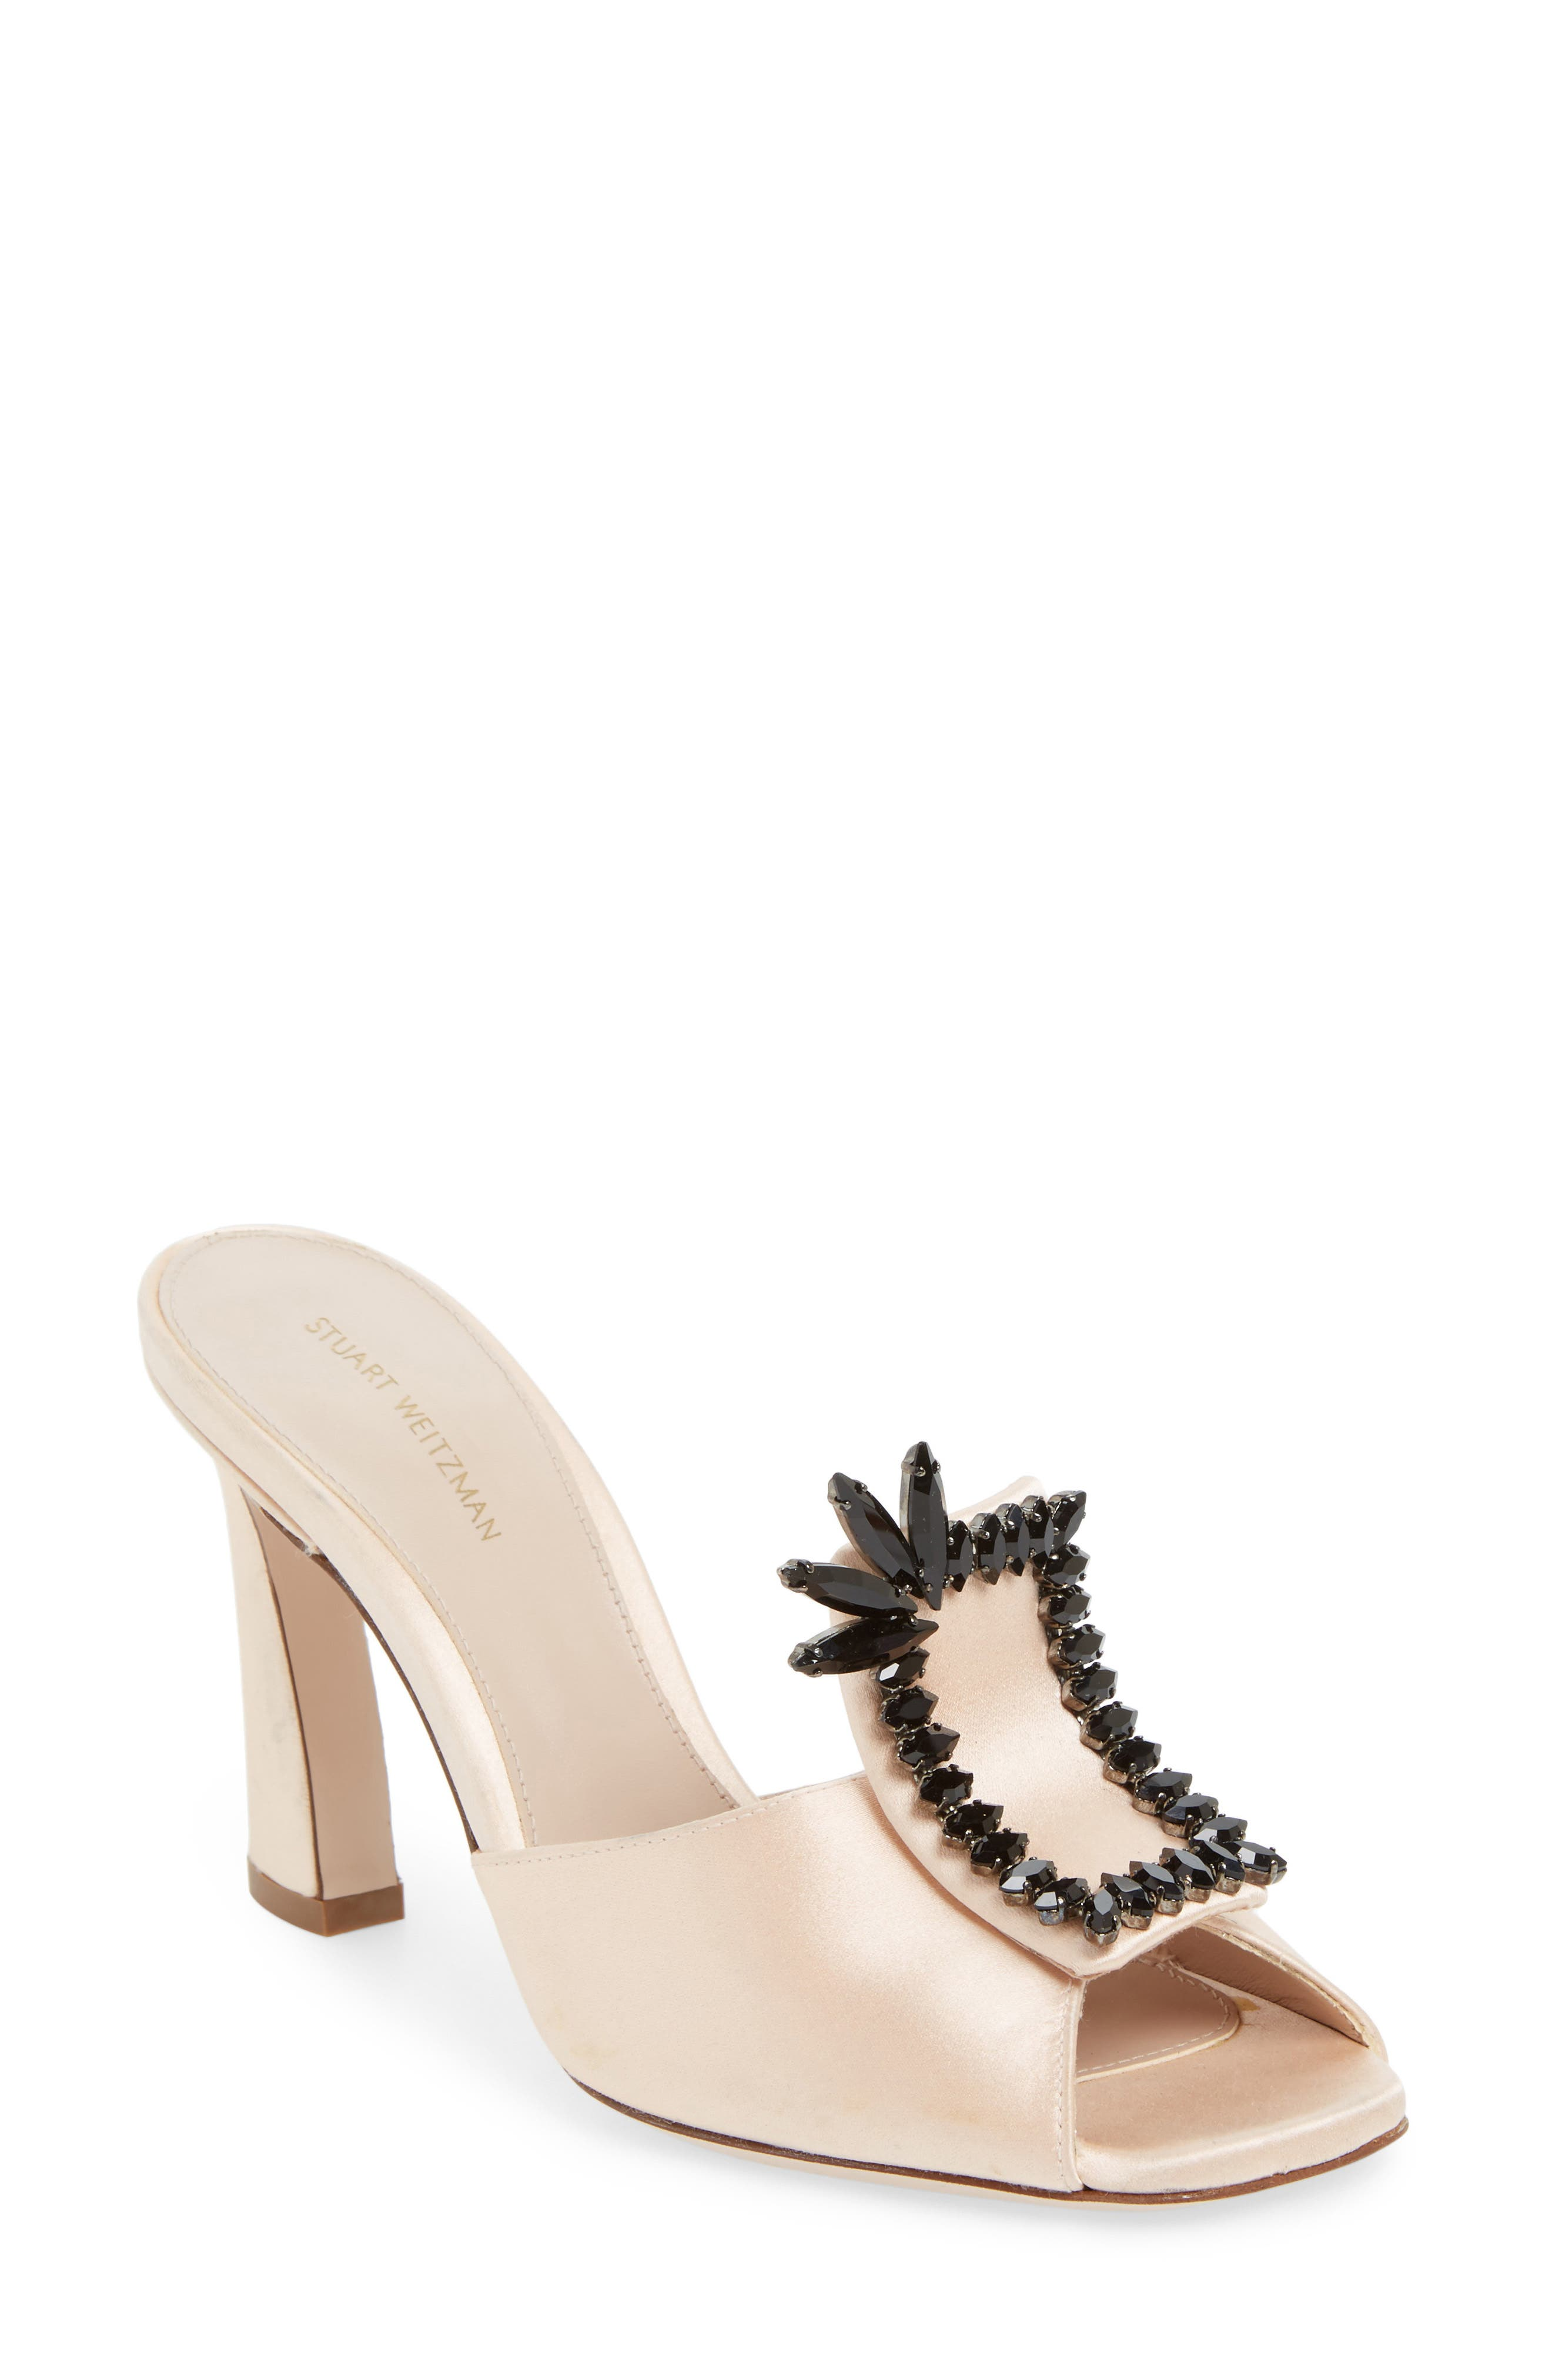 Radiance Embellished d'Orsay Sandal,                         Main,                         color, 270